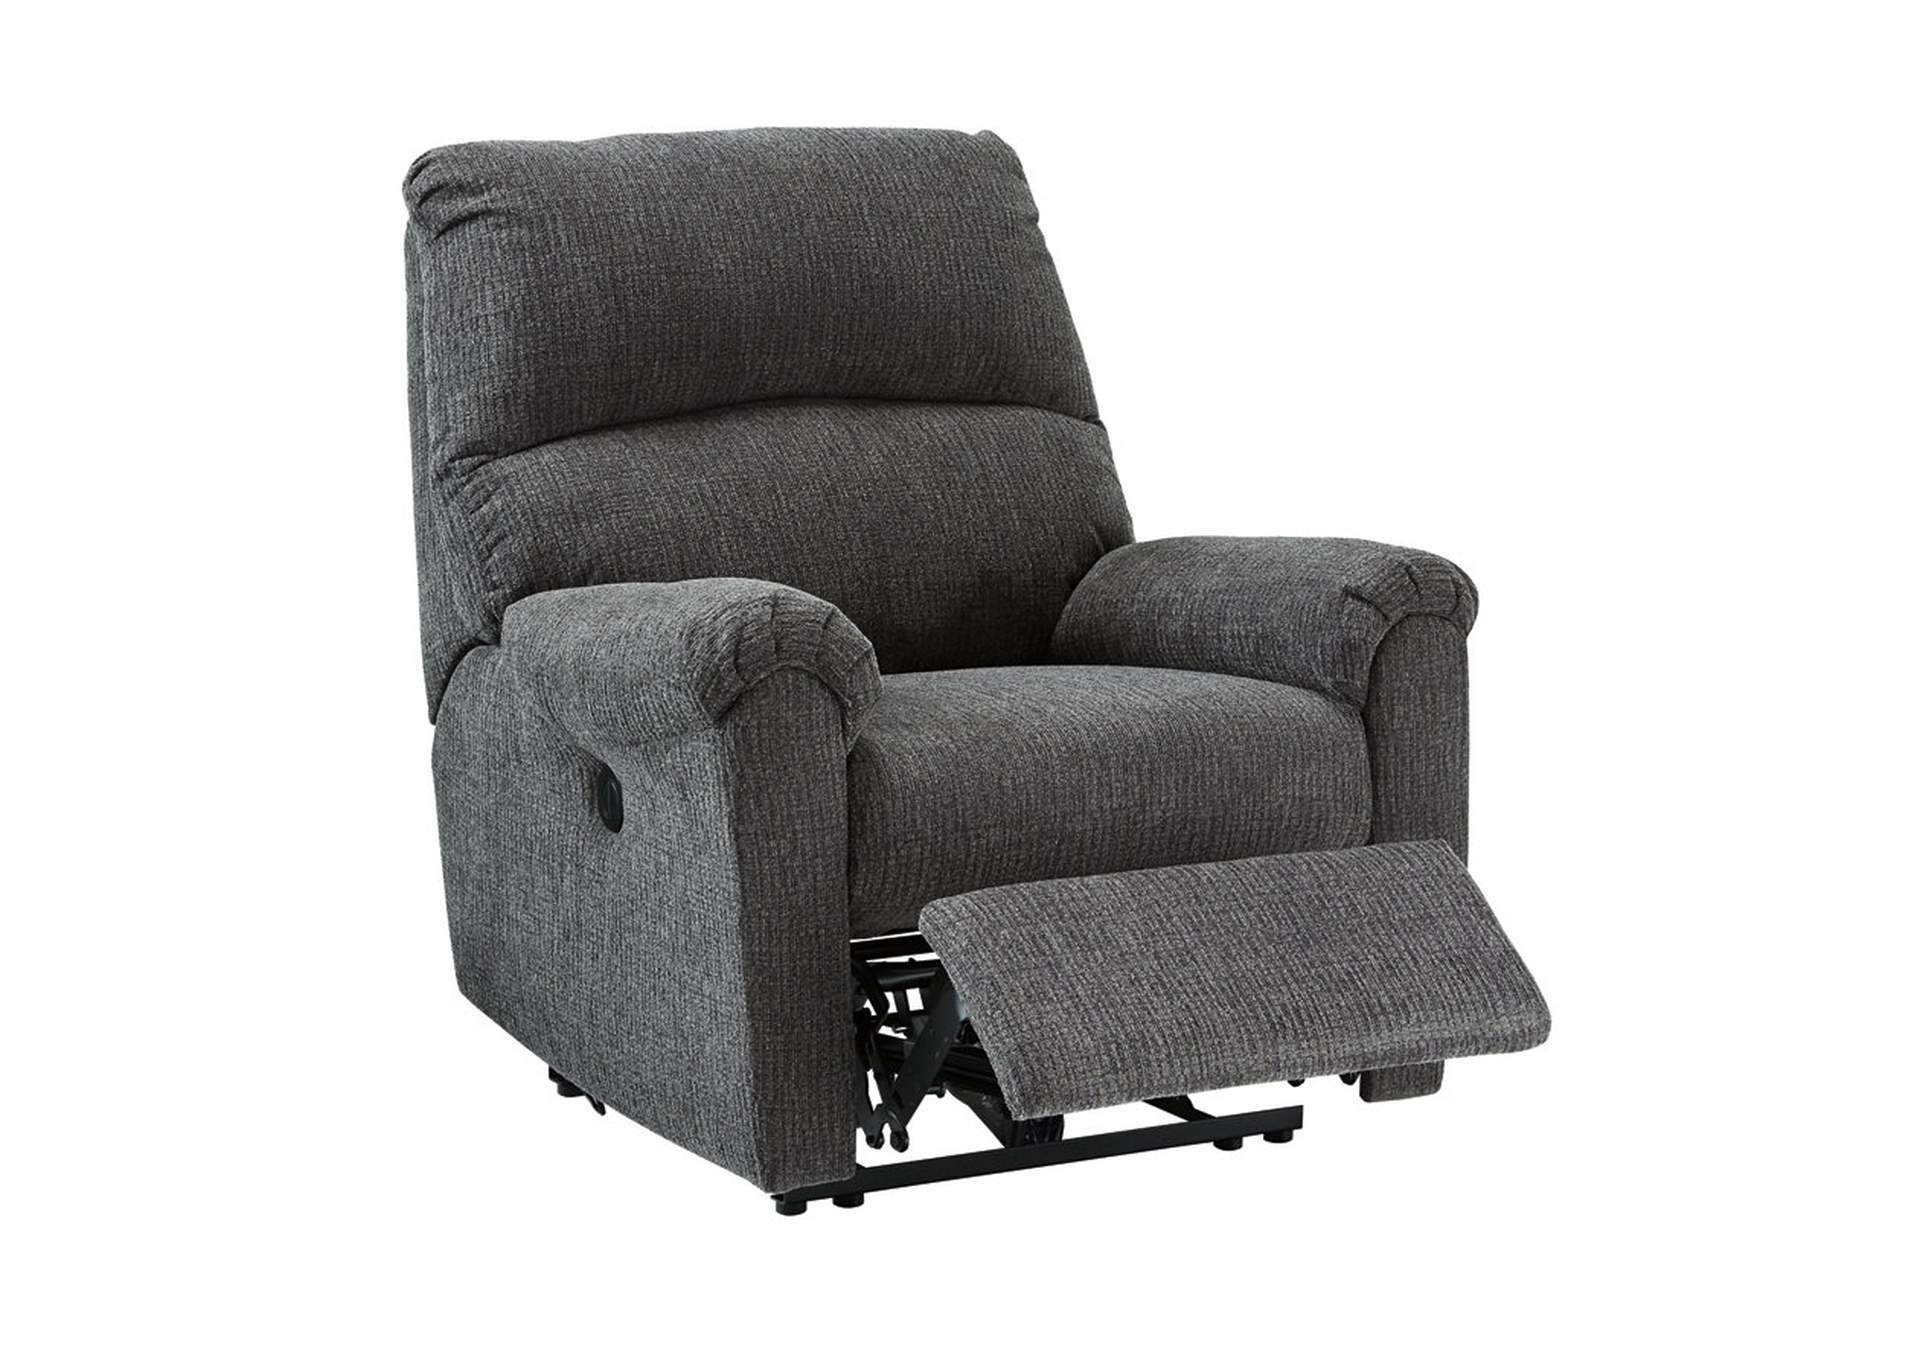 McTeer Charcoal Power Recliner,Signature Design By Ashley